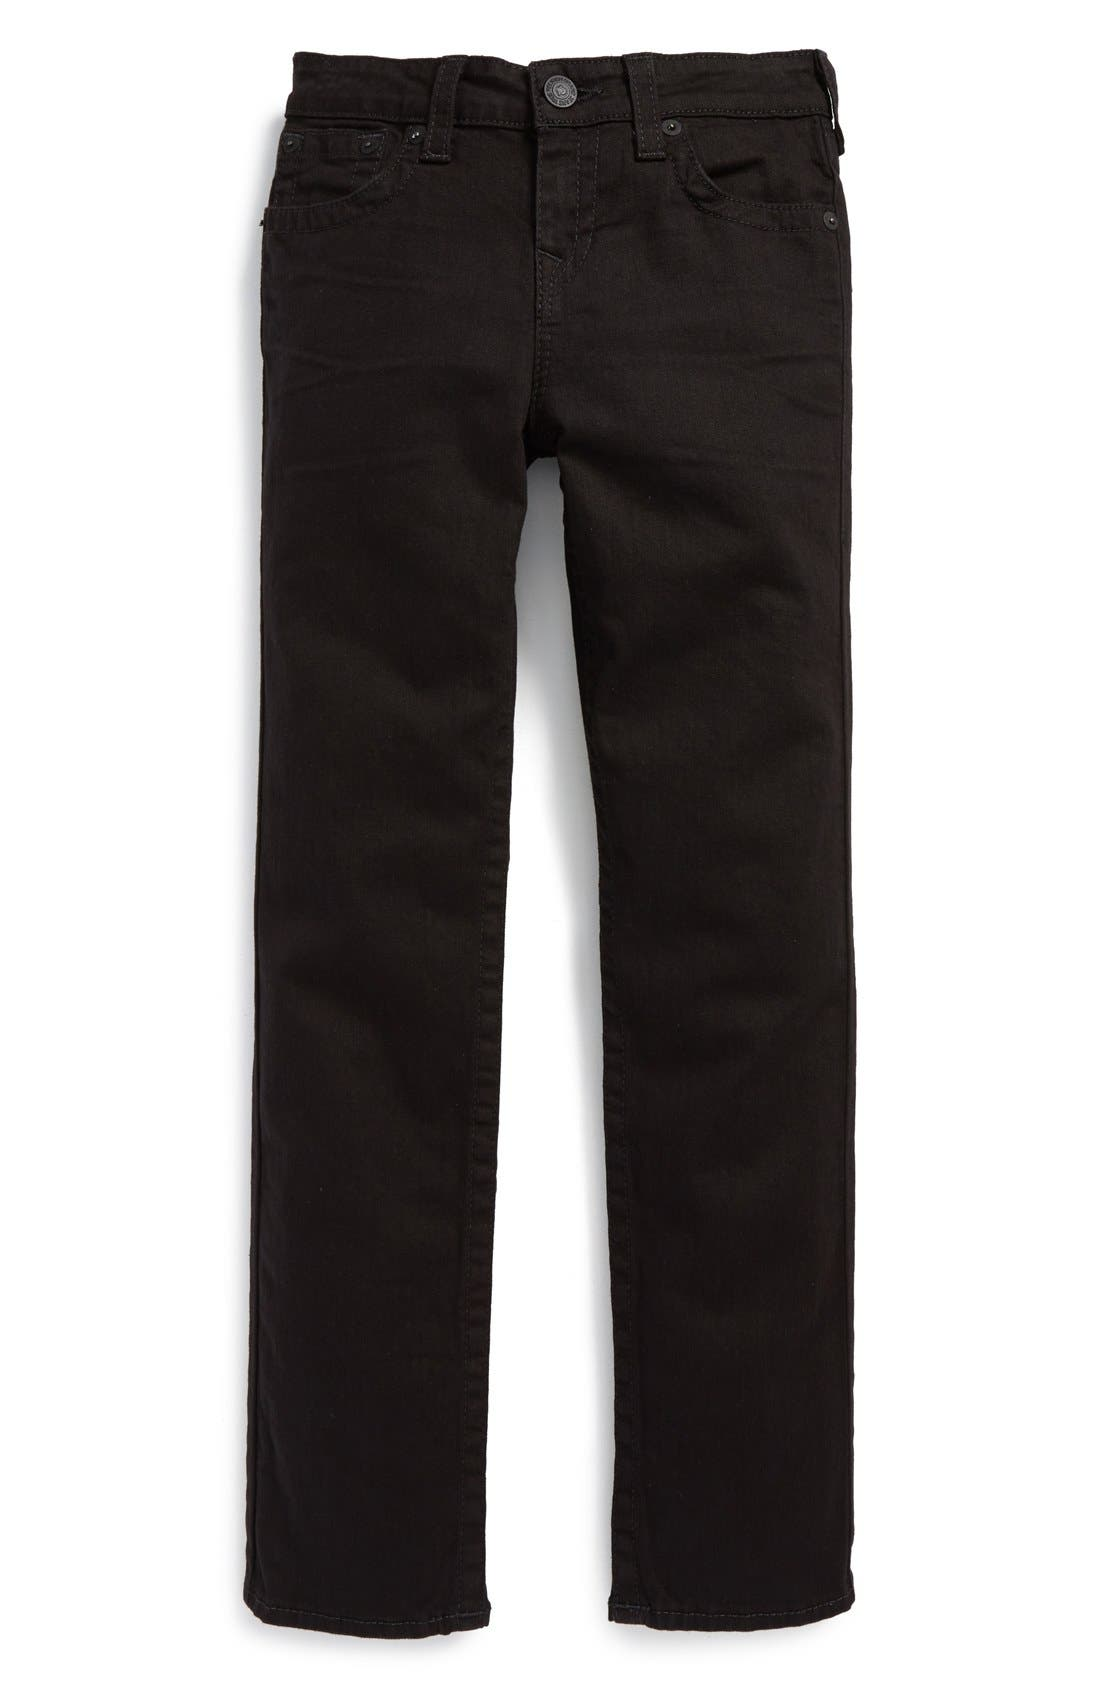 'Geno' Relaxed Slim Fit Jeans,                         Main,                         color, 018